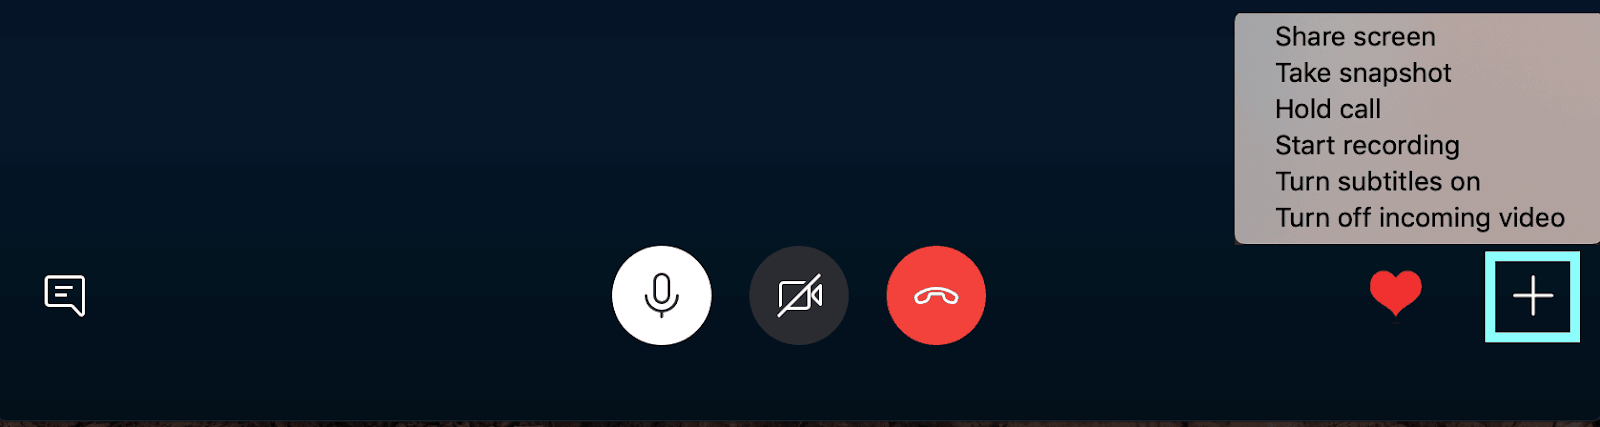 Skype other features during call